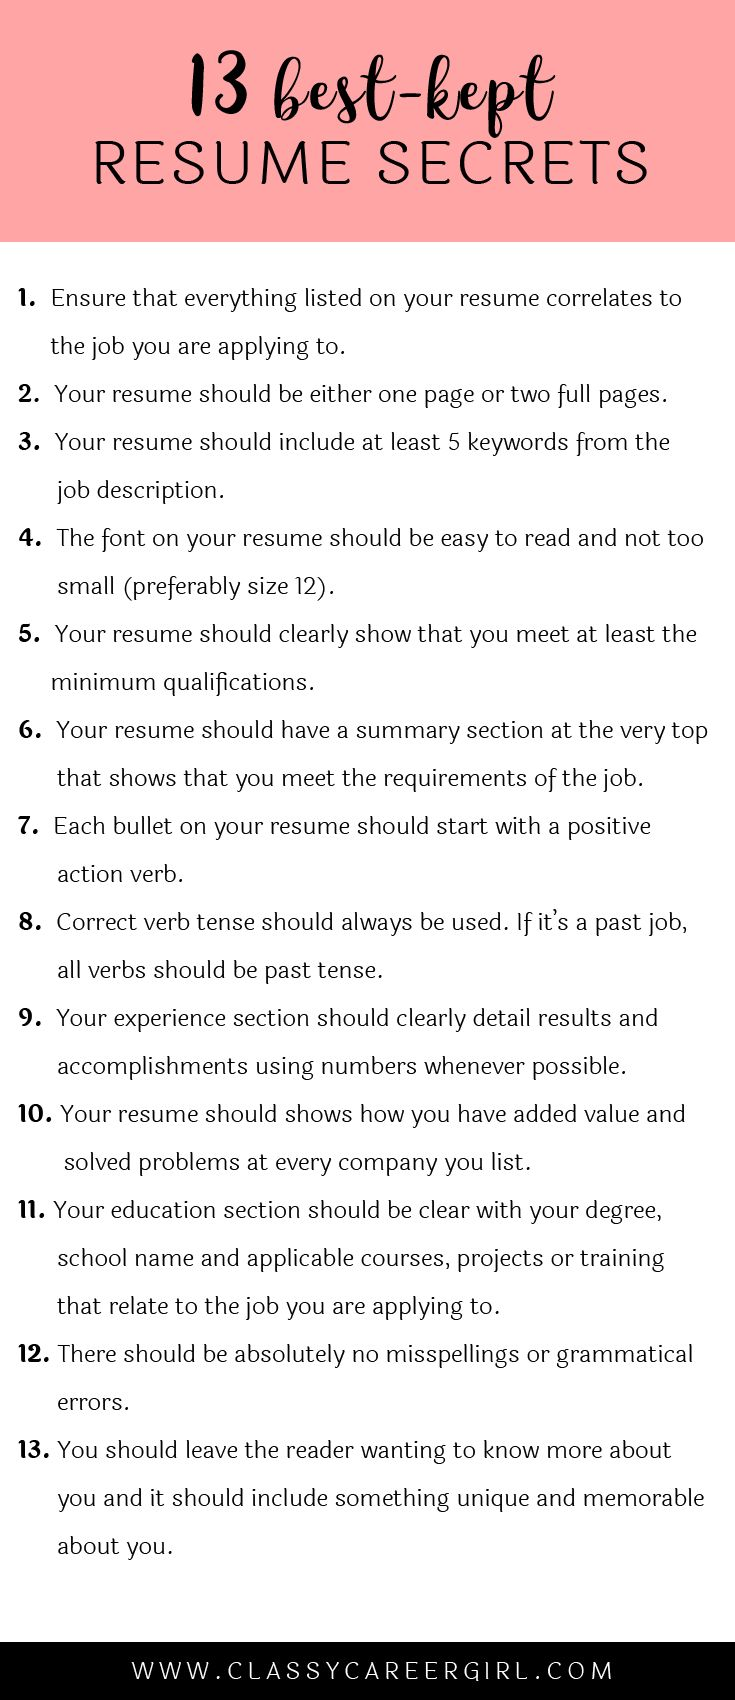 Speech Therapy Quotes Success Motivation Work Quotes  13 Bestkept Resume Secrets Since